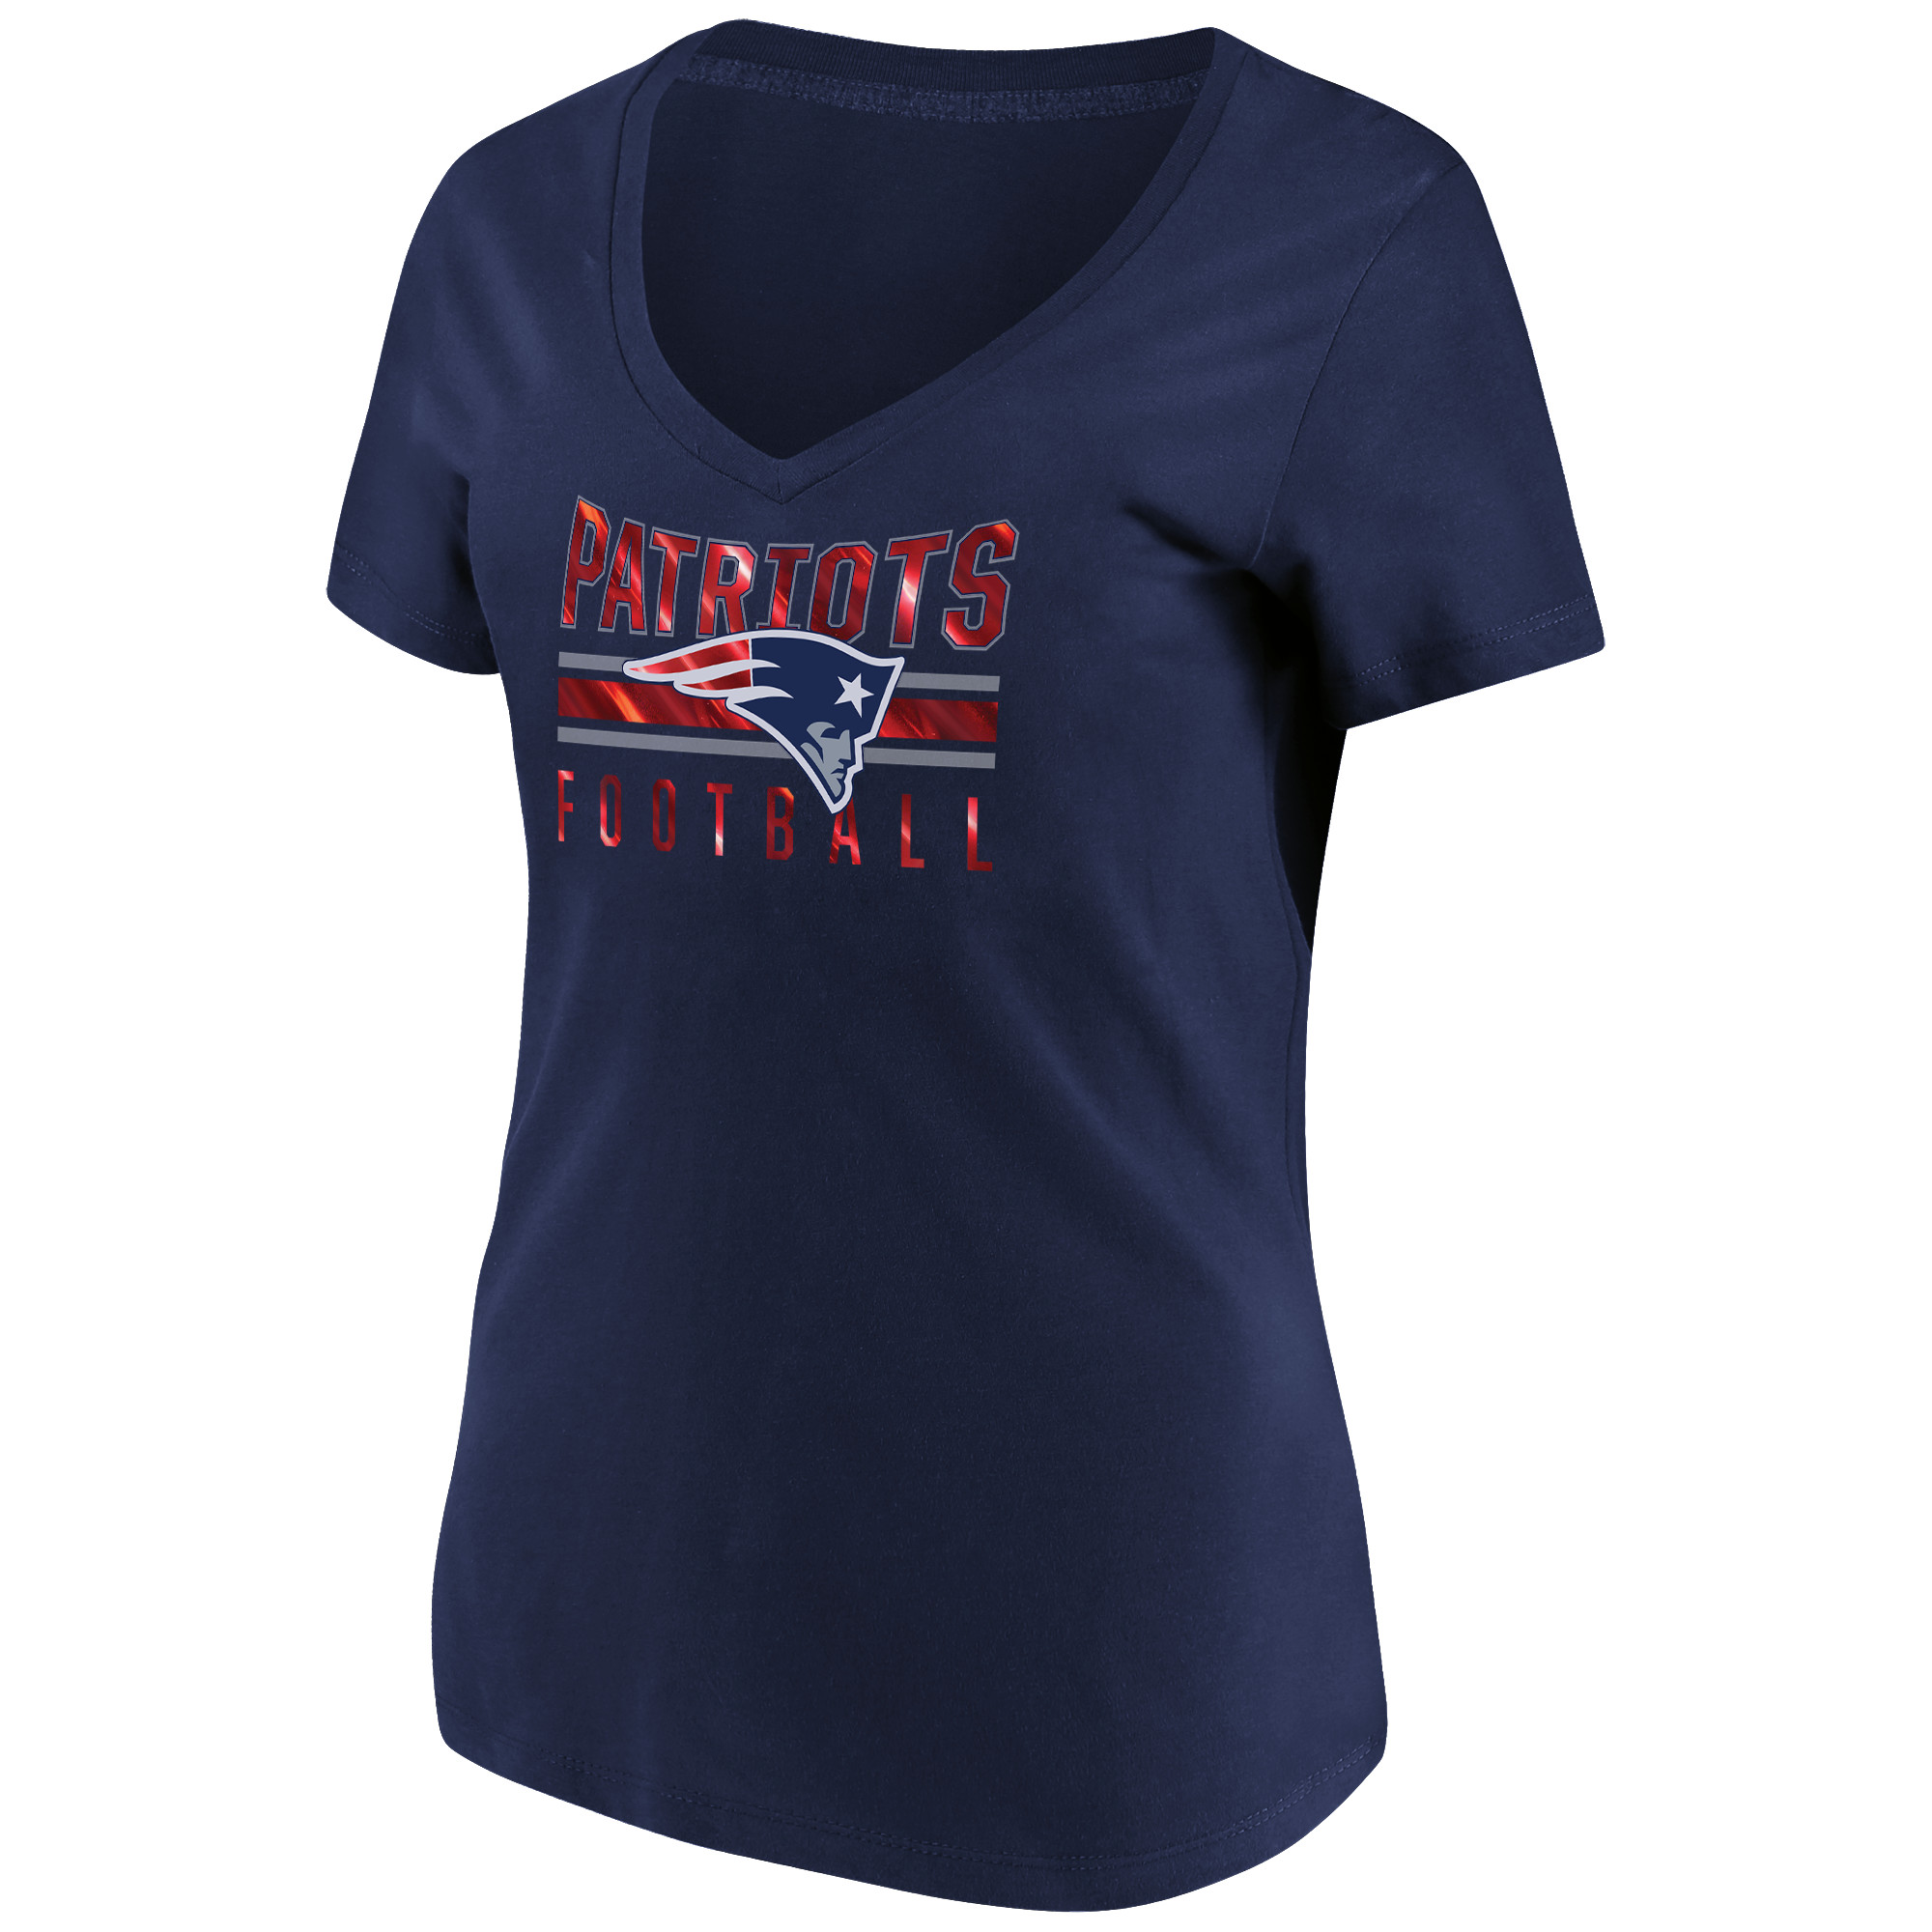 Women's Majestic Navy New England Patriots Game Day Style V-Neck T-Shirt